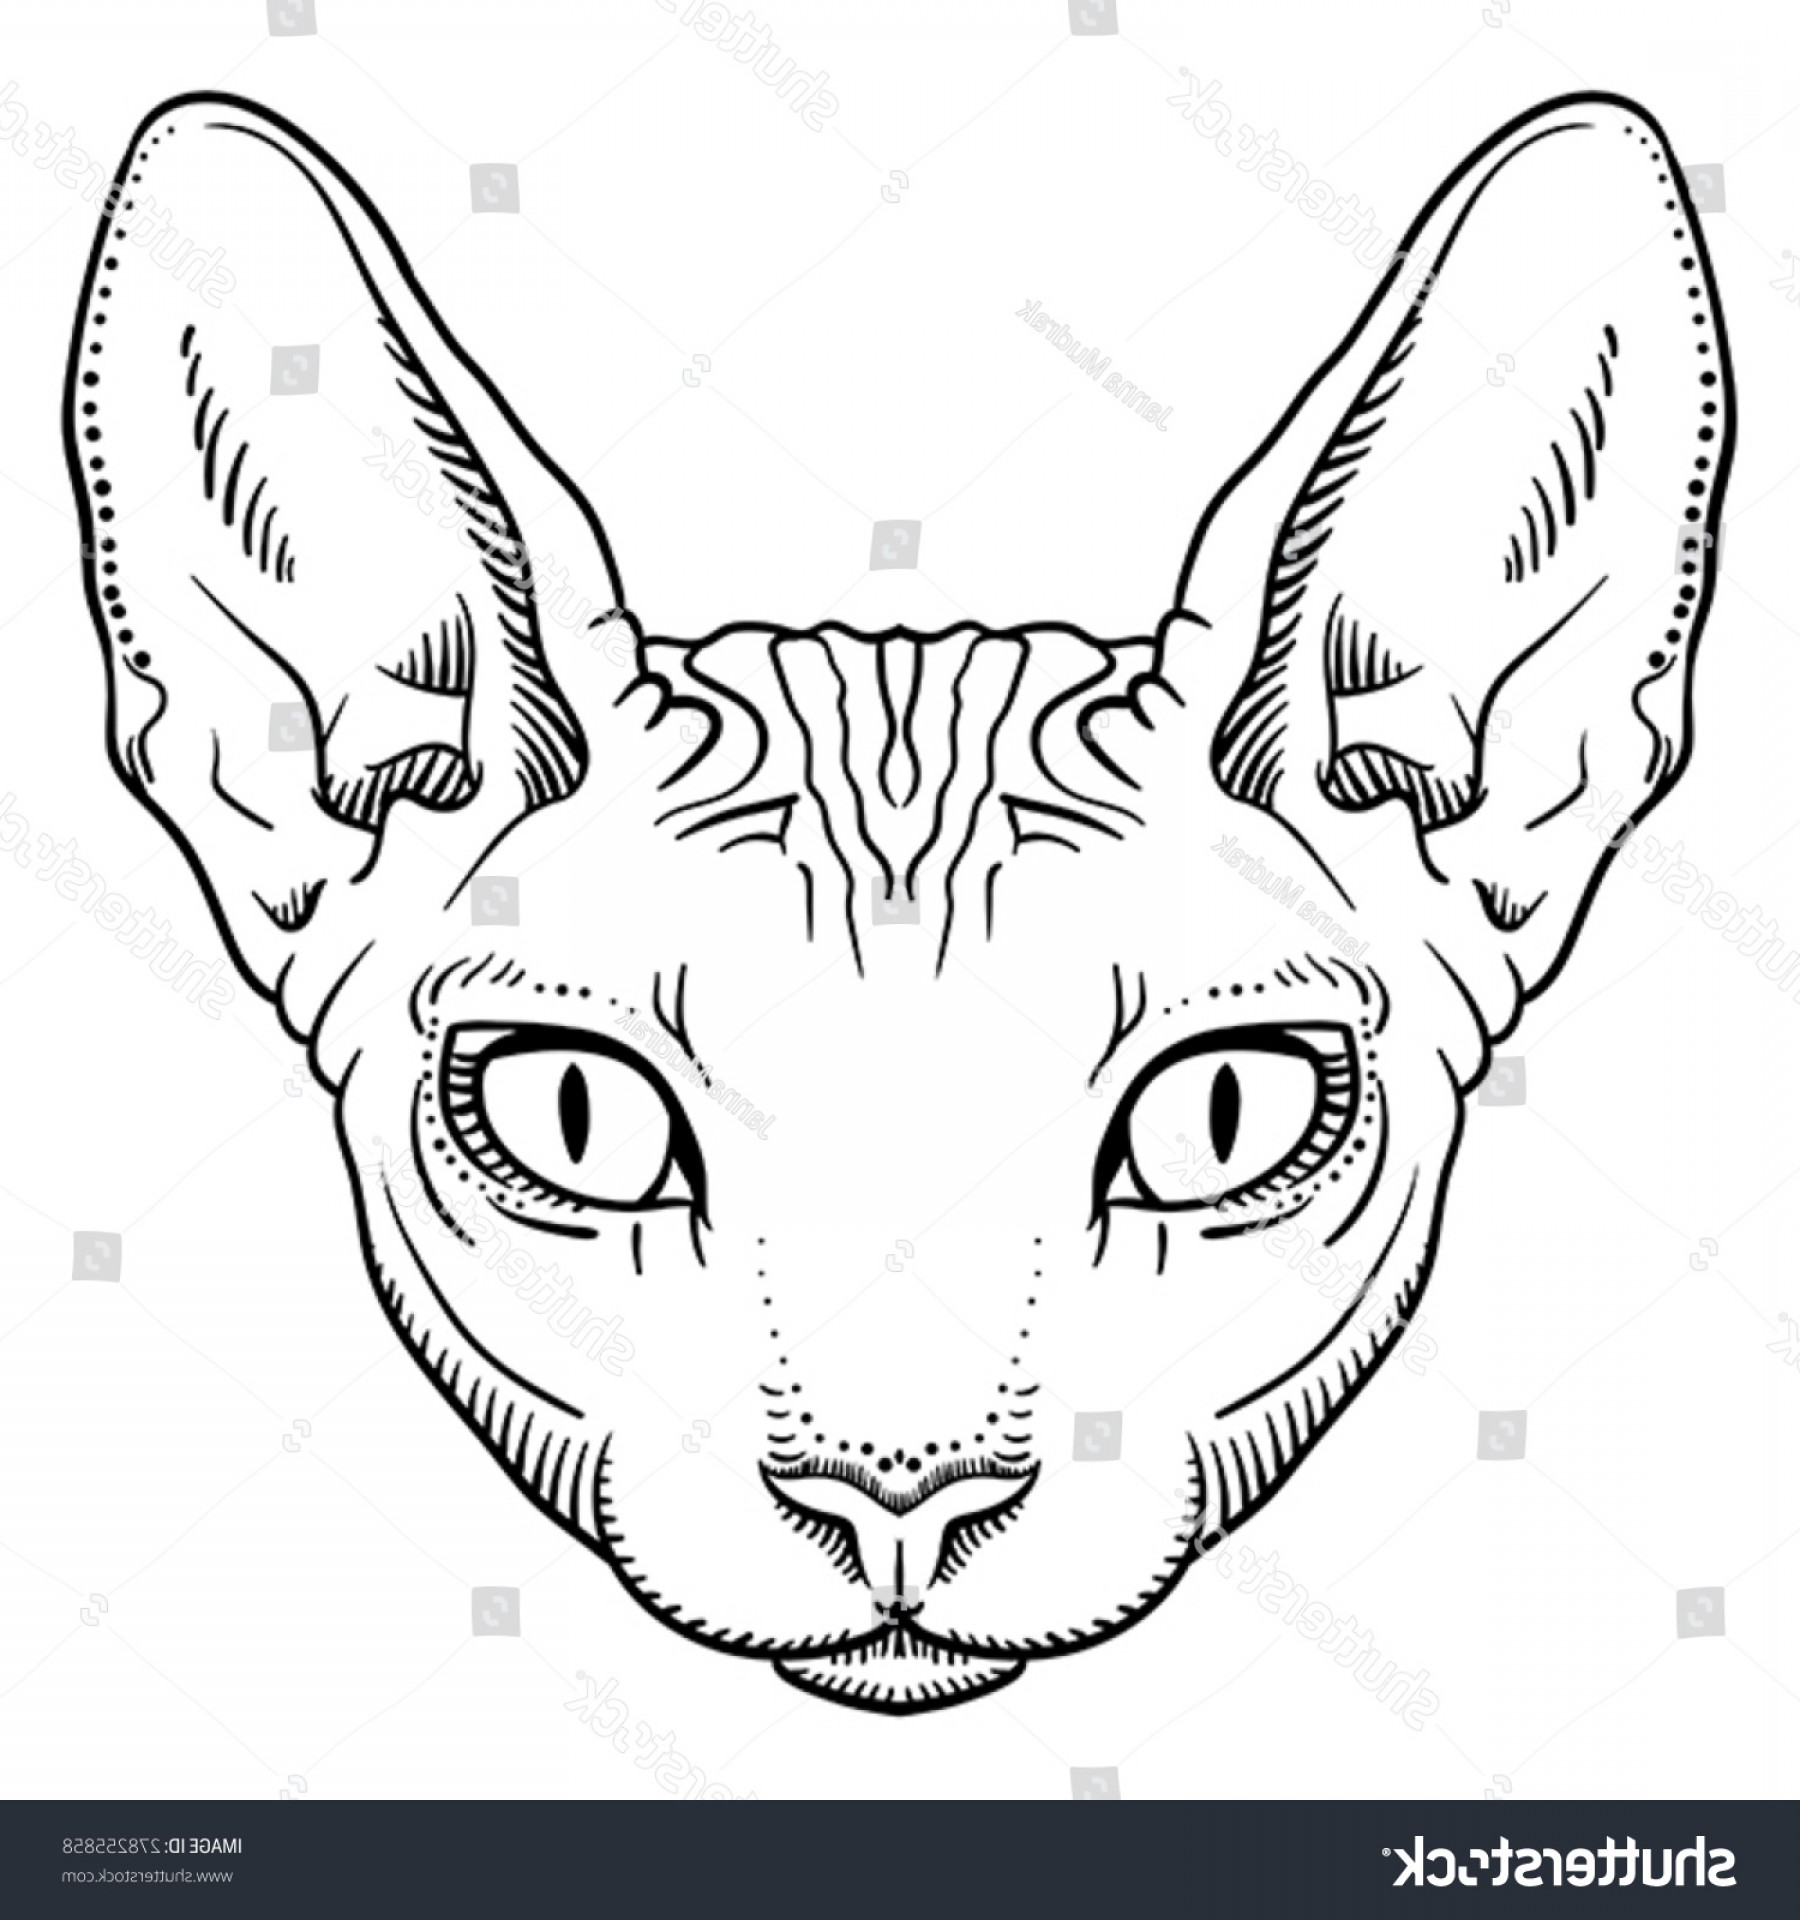 1800x1920 Just Arrived Outline Of Cat Face Vector Black Drawing With Paws